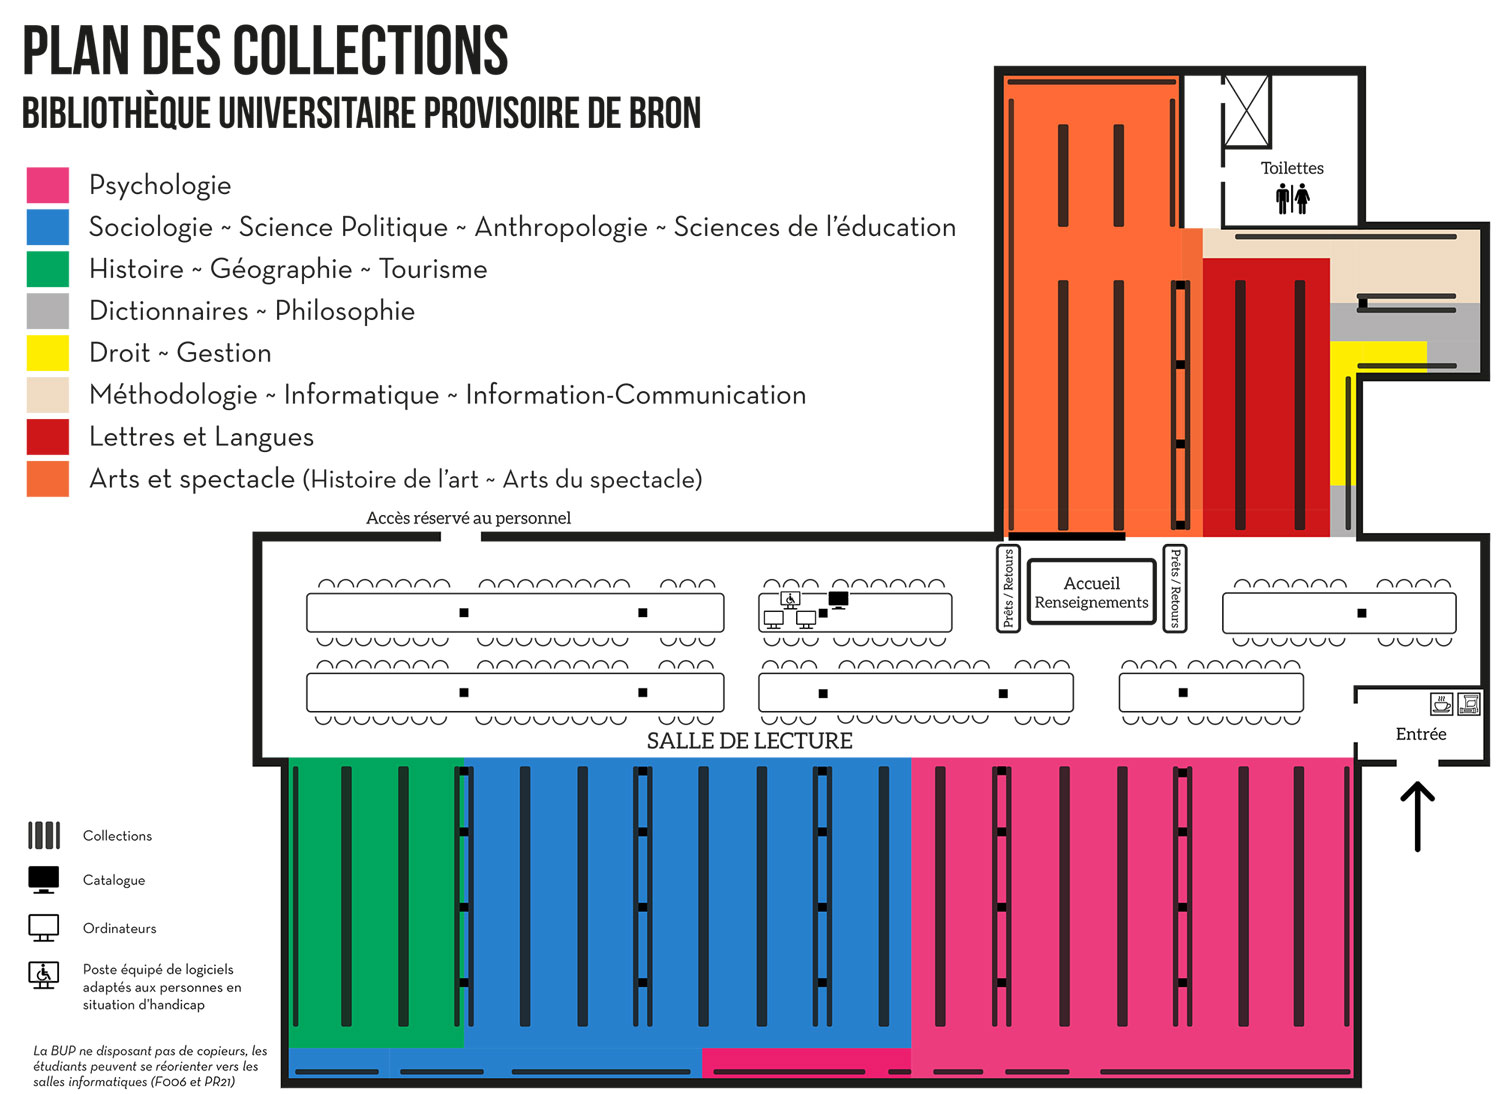 BUP - Plan des collections